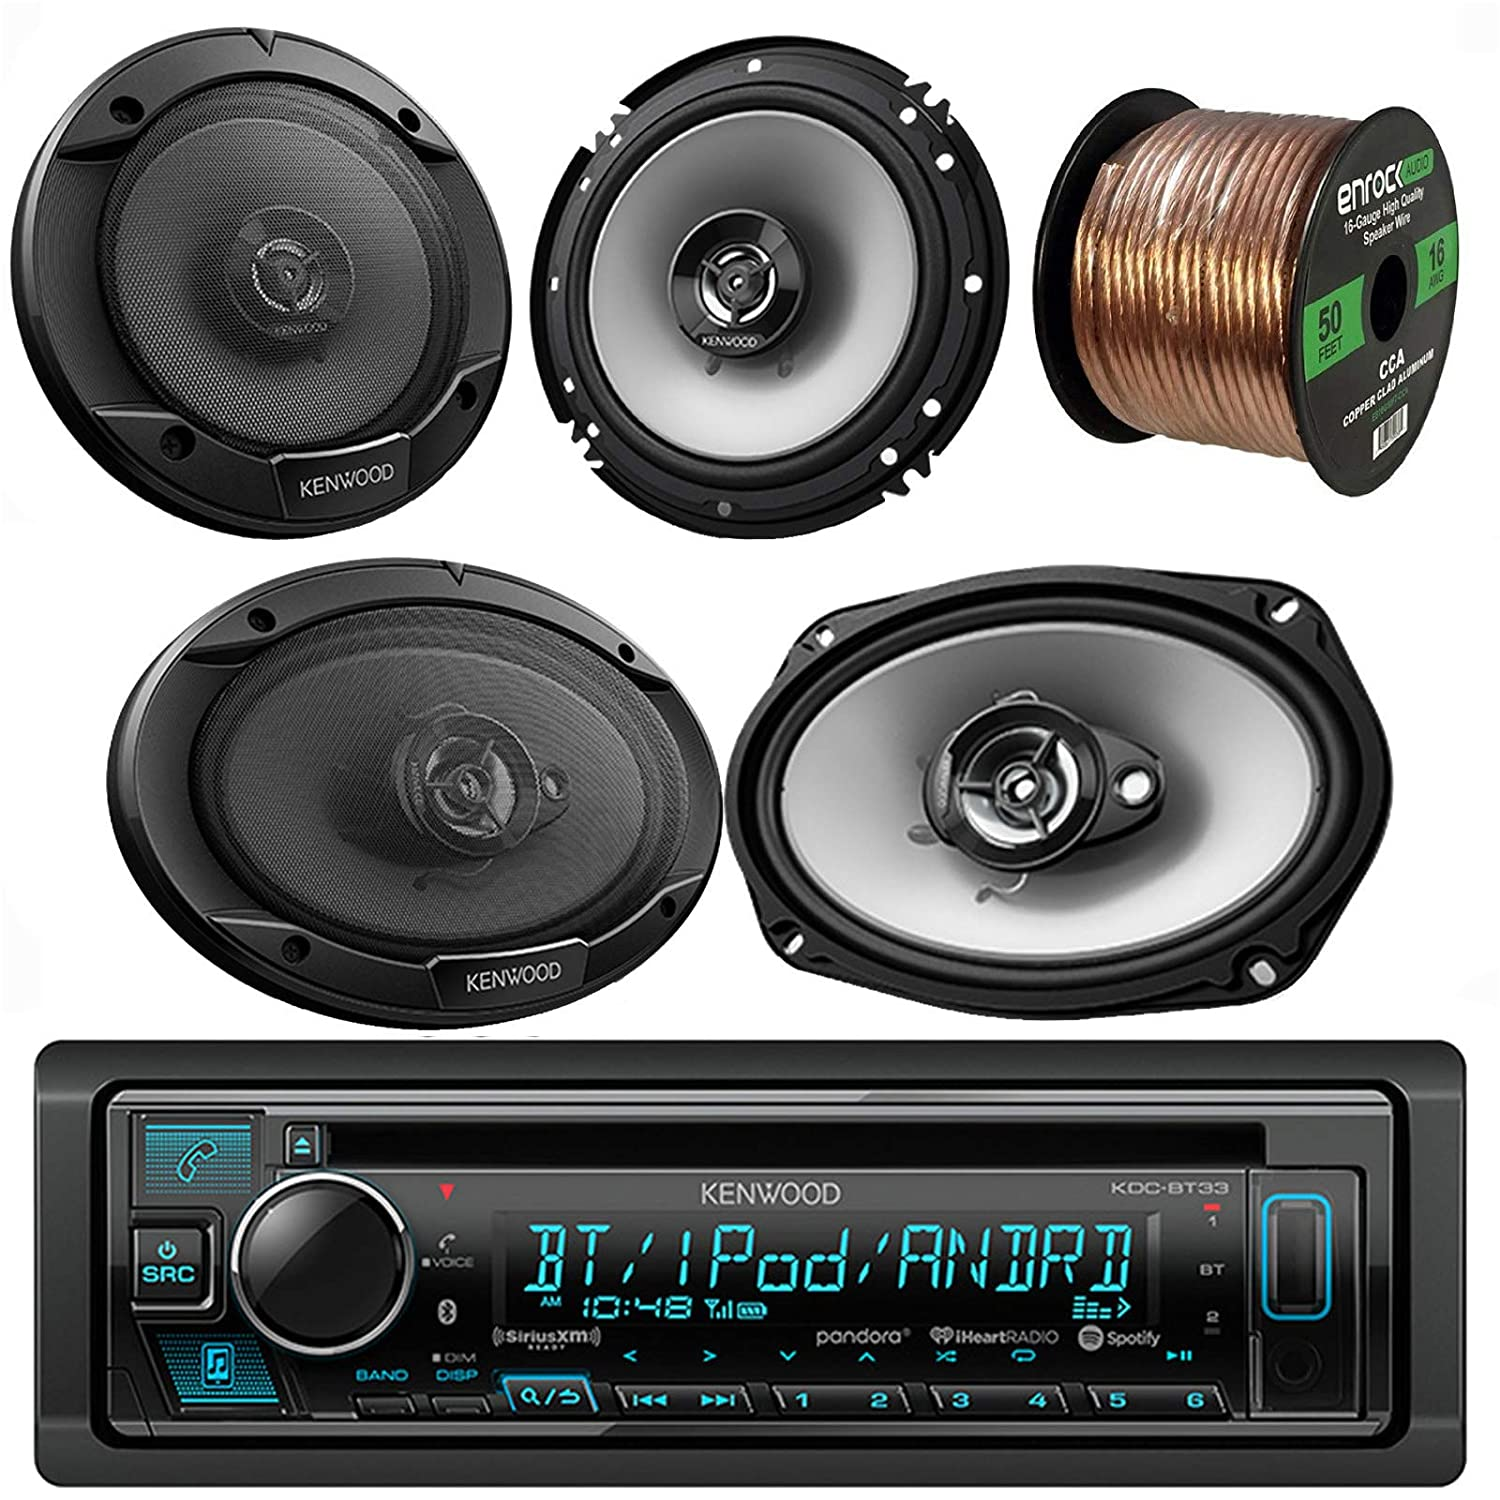 Kenwood Receiver With Two 6x9-Inch Speakers, Two 6.5-Inch Speakers, and Speaker Wire